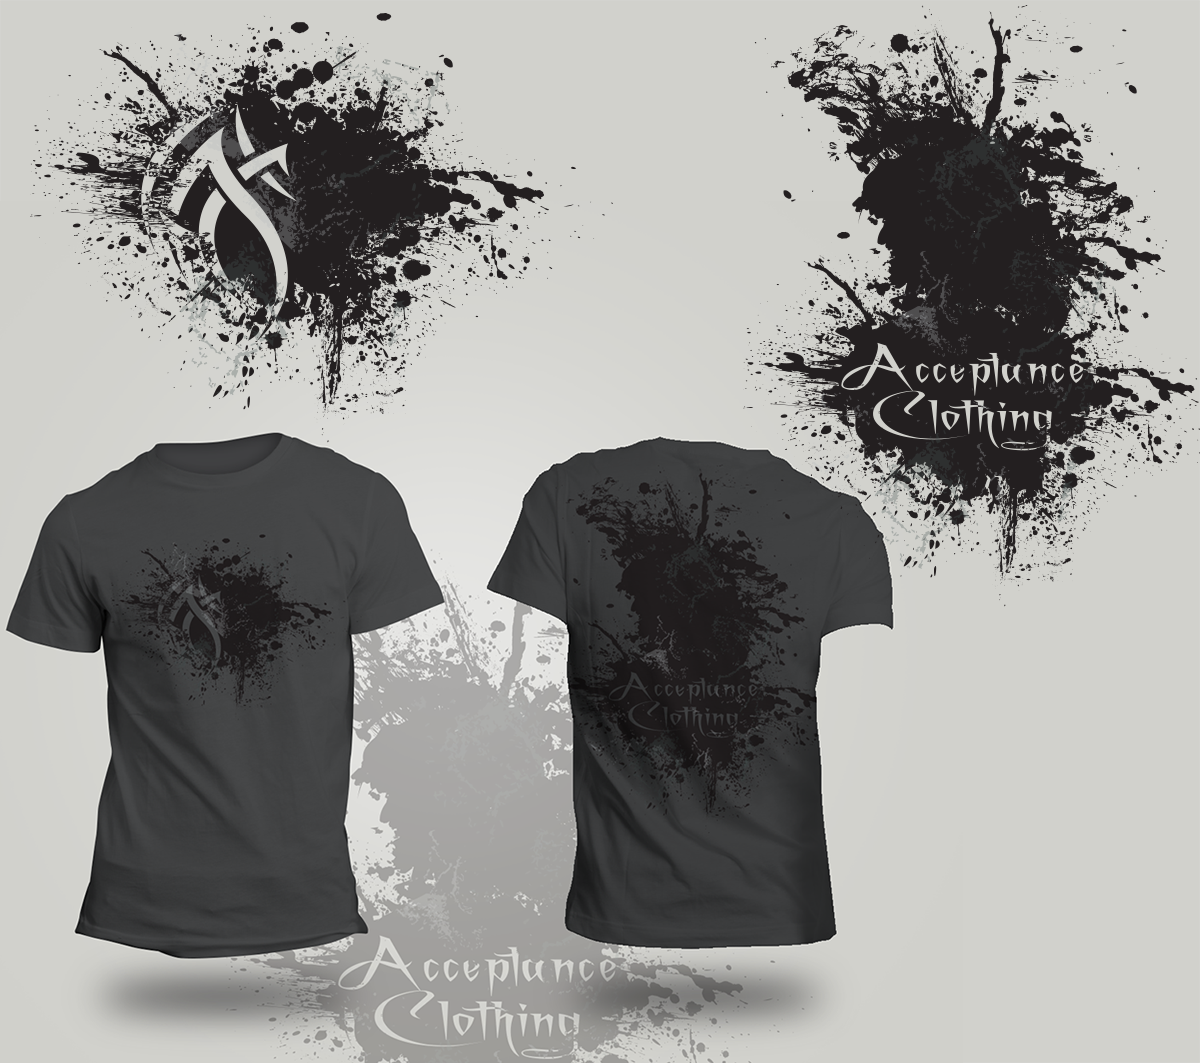 Clothing t shirt design for acceptance clothing by for Graphic edge t shirt design